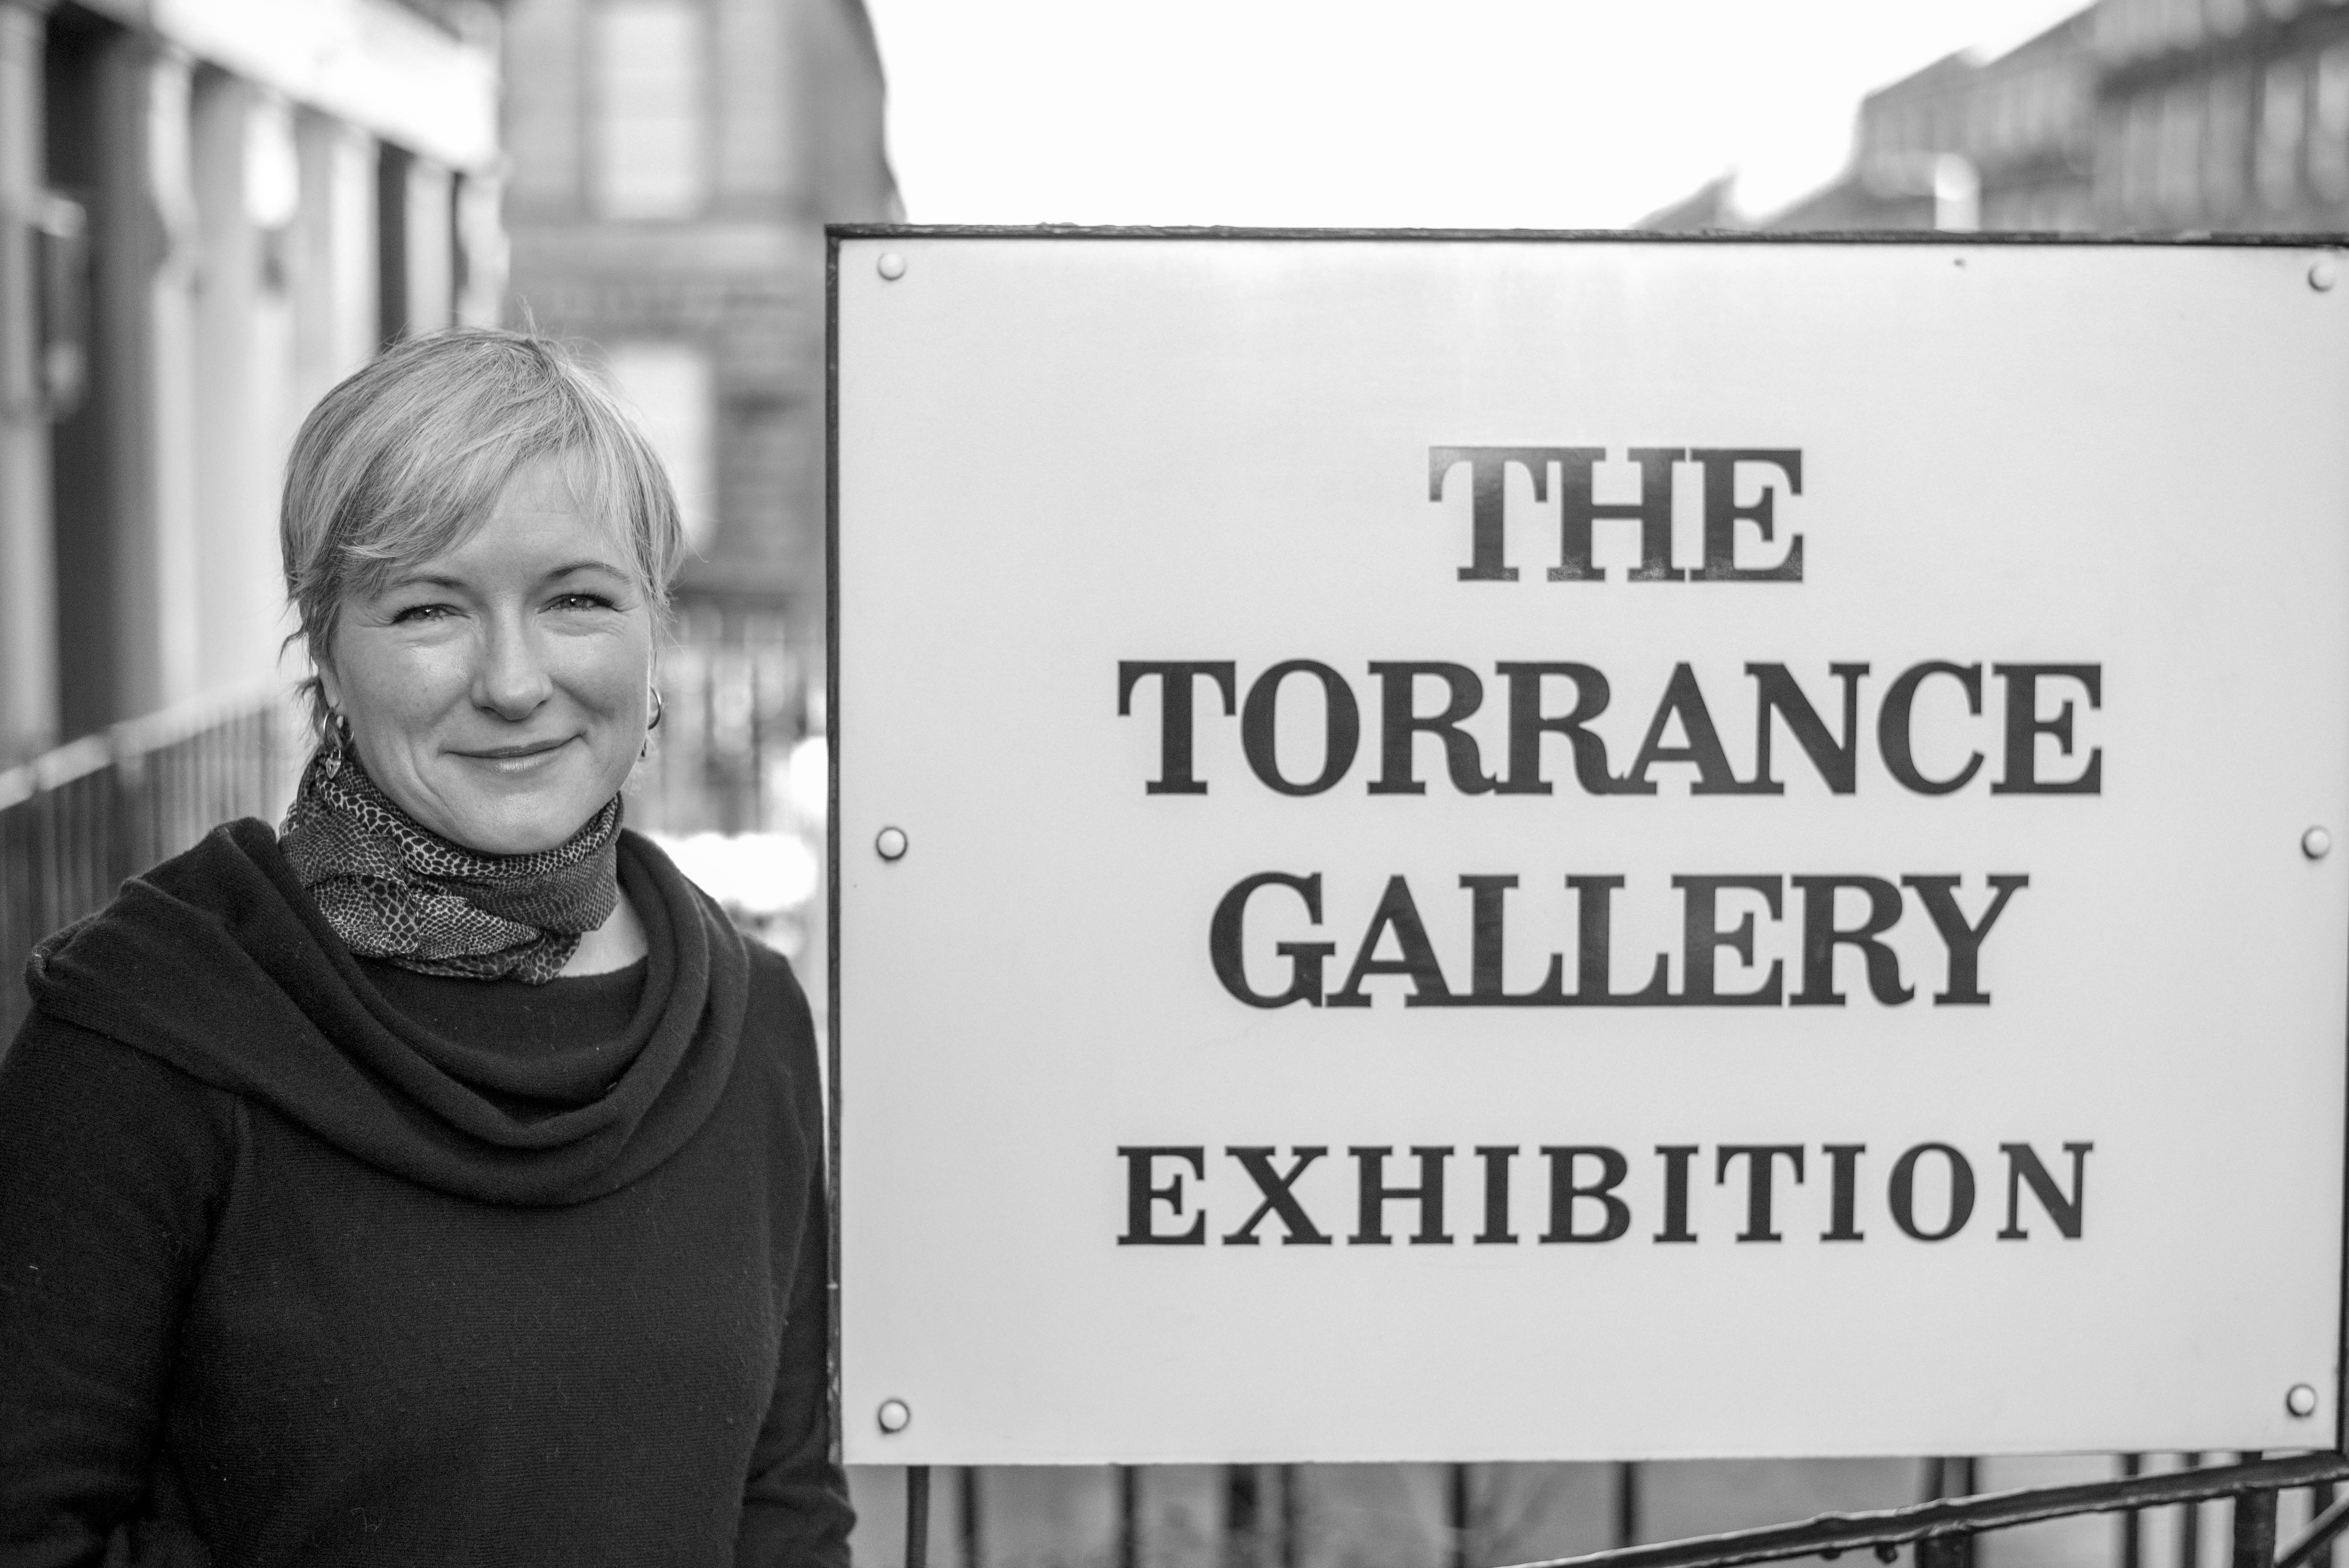 The Torrance Gallery